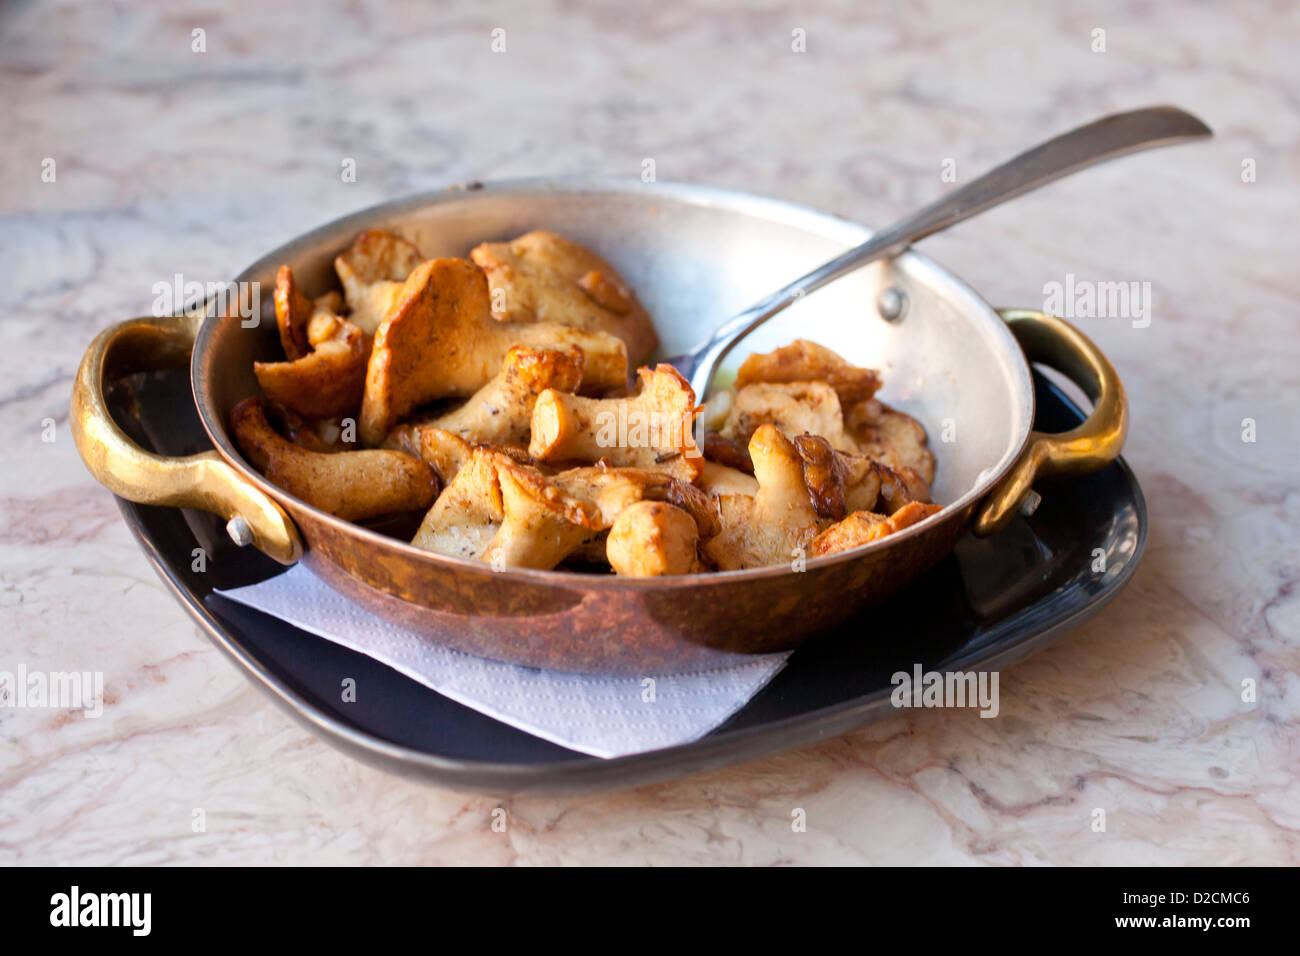 Cooked mushrooms in a copper frying pan. - Stock Image